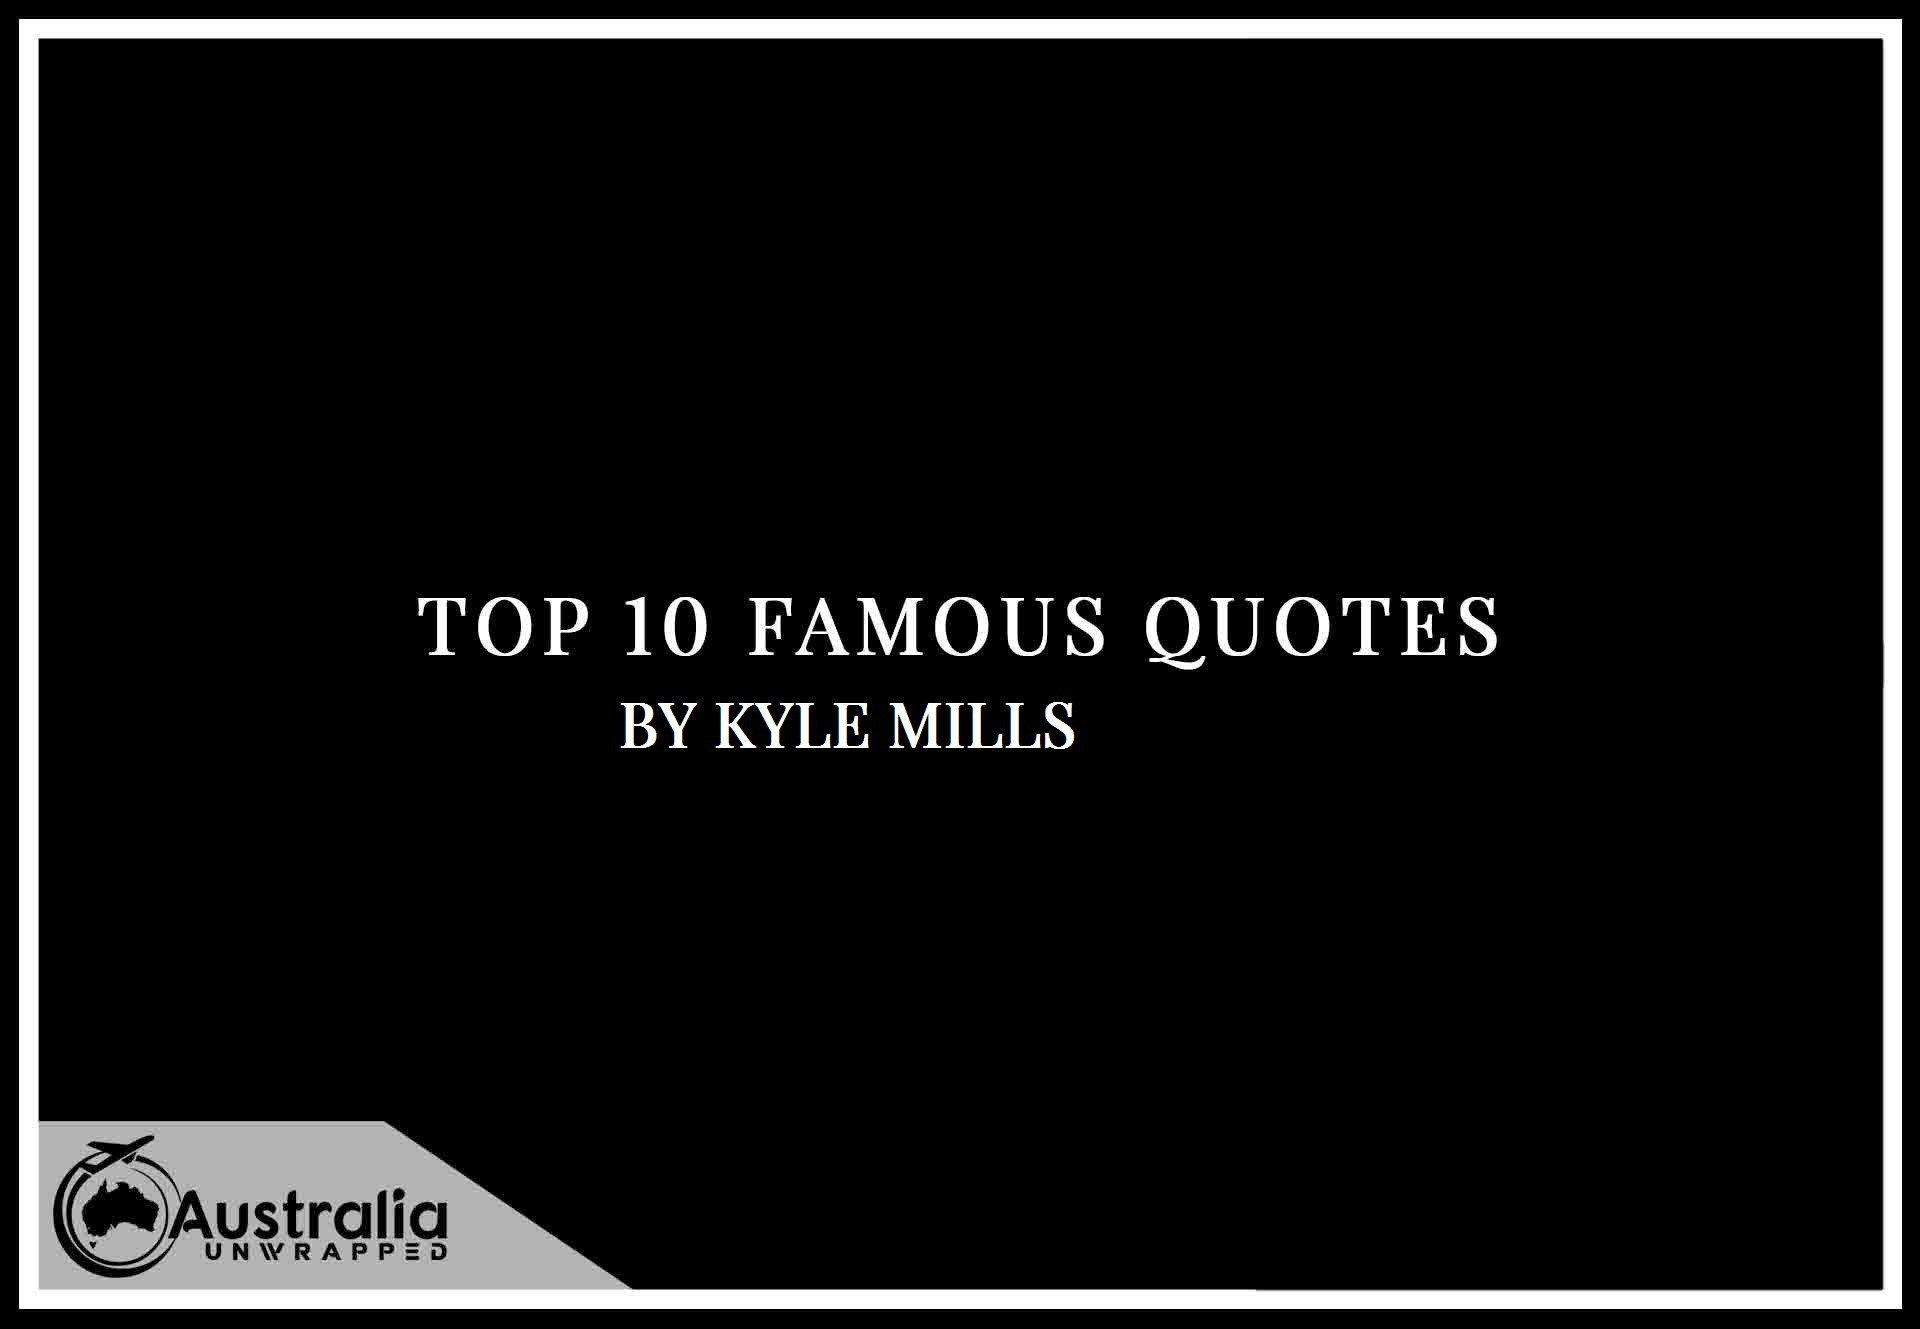 Kyle Mills's Top 10 Popular and Famous Quotes